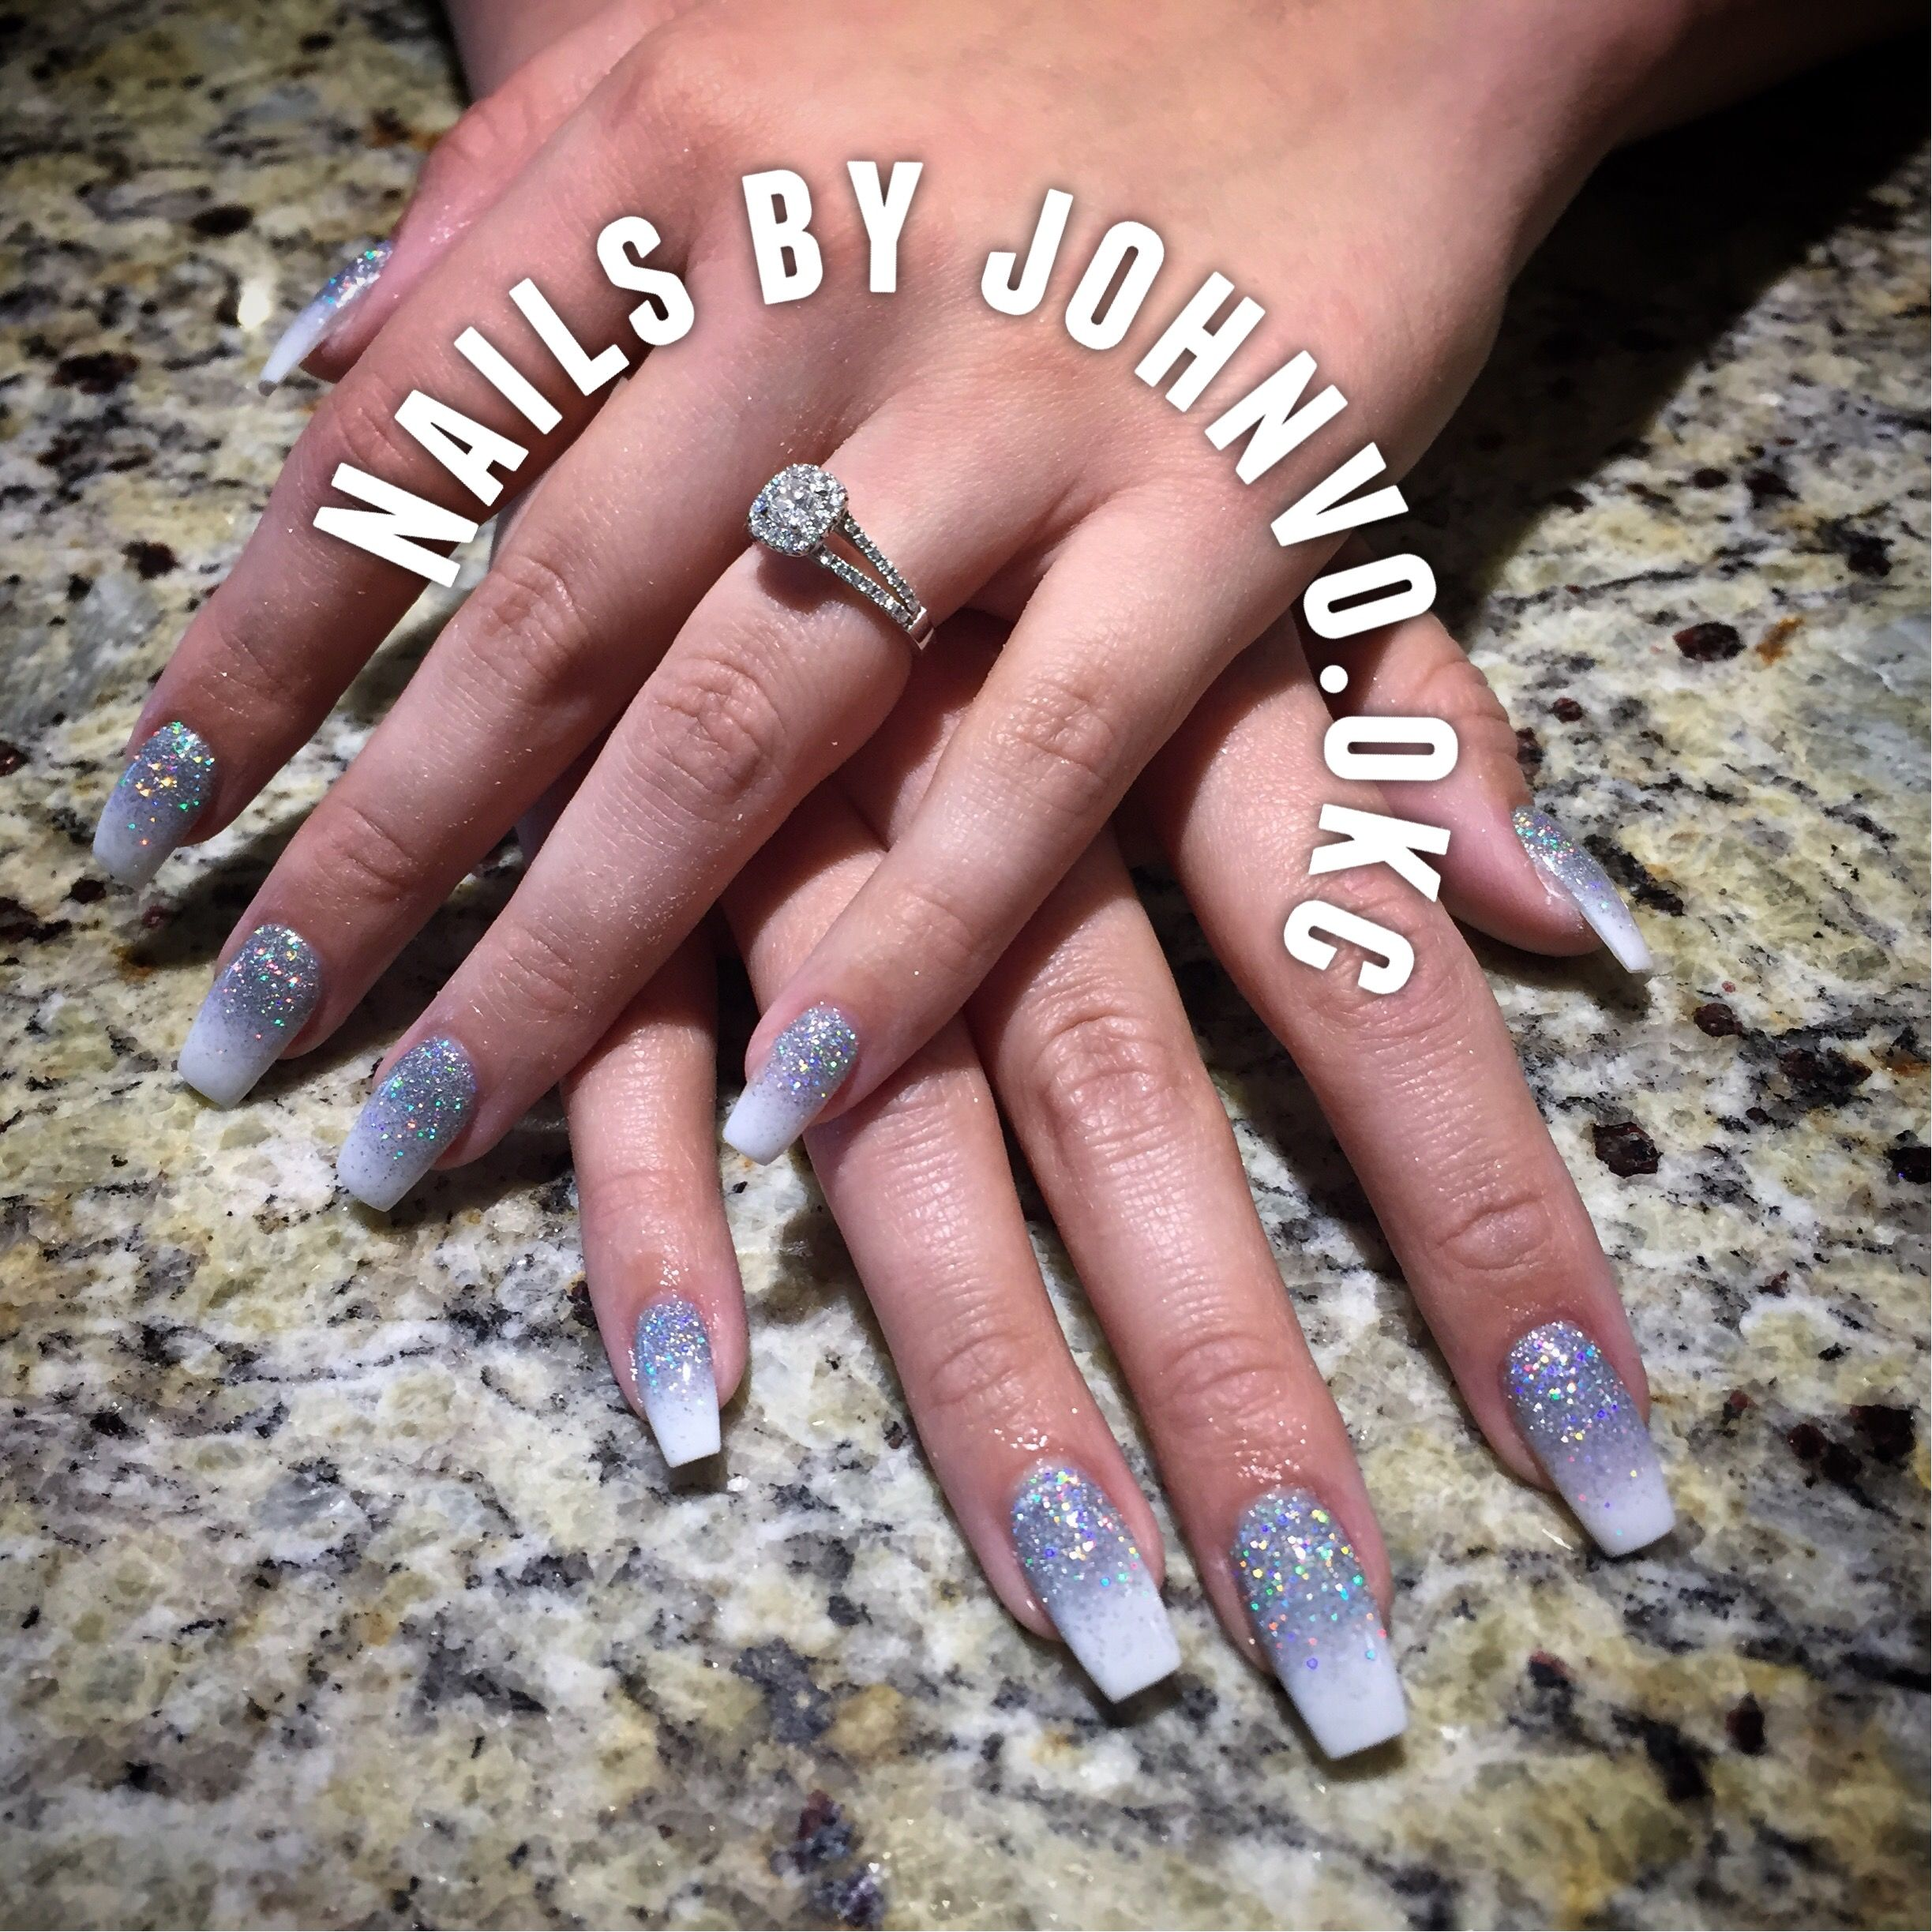 White And Glitter Ombre Dip Powder Ballerina Nails Dipping Powder Nails Powder Nails Gel Powder Nails Coffin Nails Glitter Dip Powder Nails Ballerina Nails